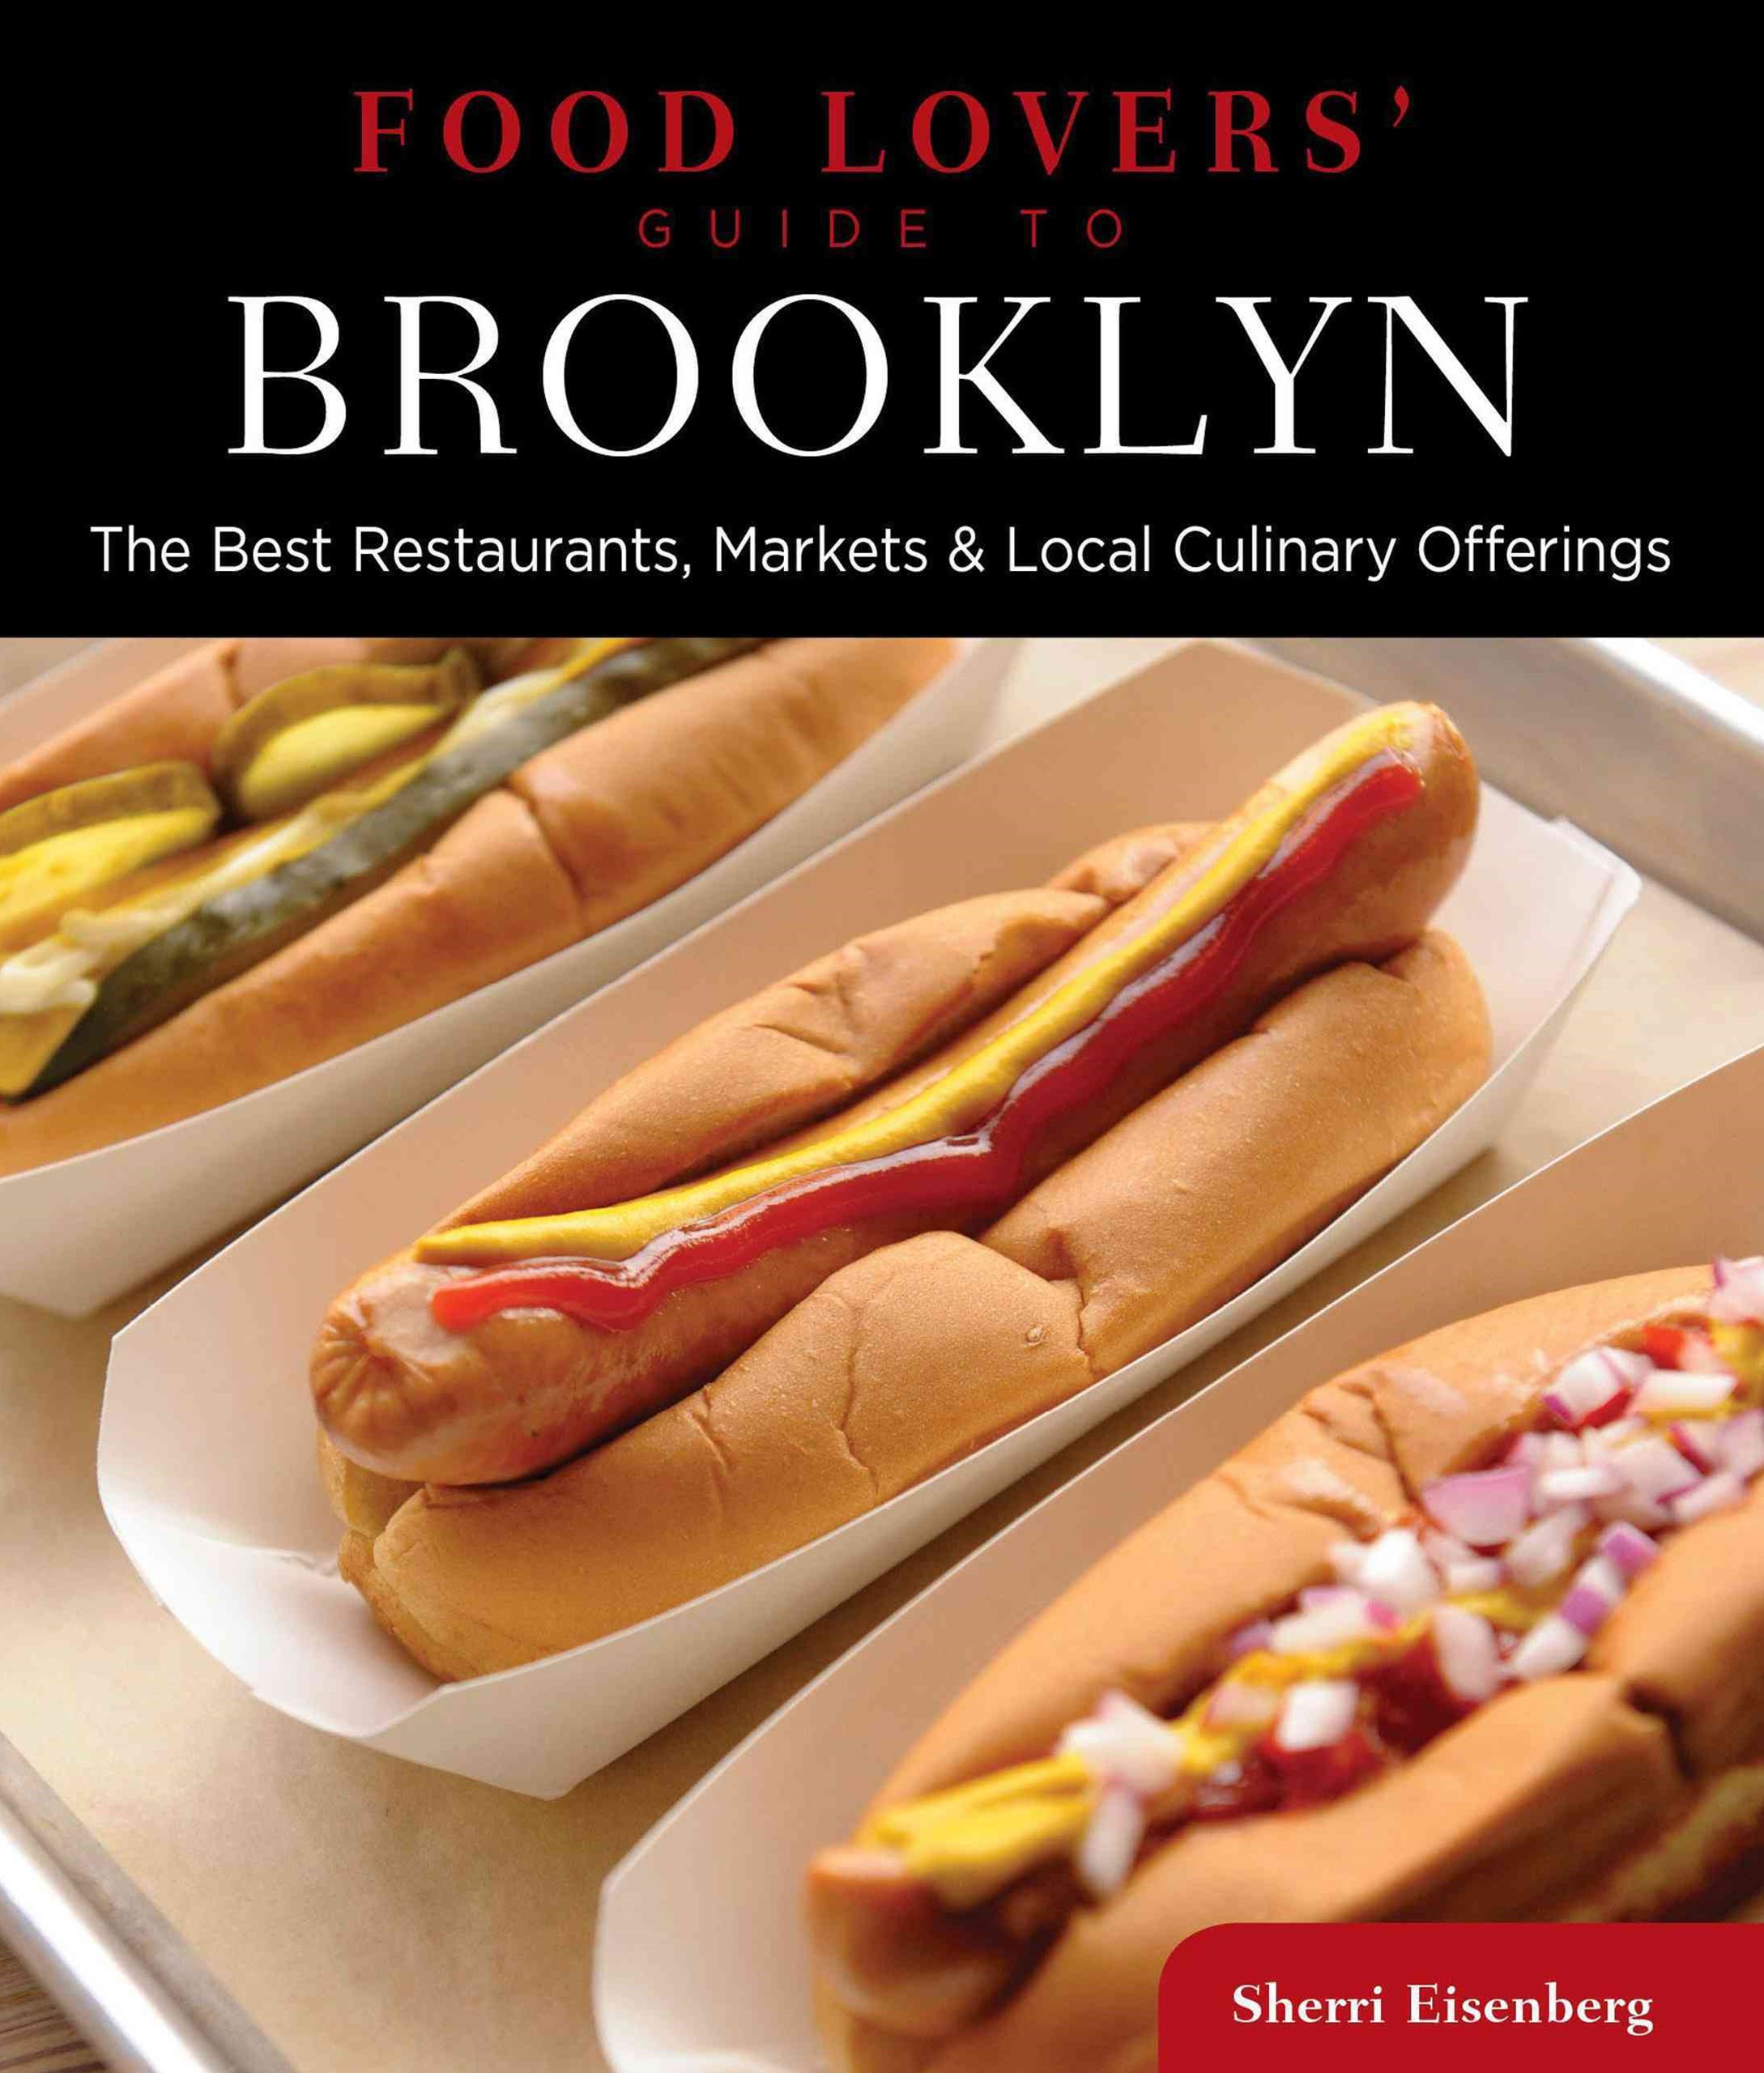 Food Lovers' Guide to Brooklyn